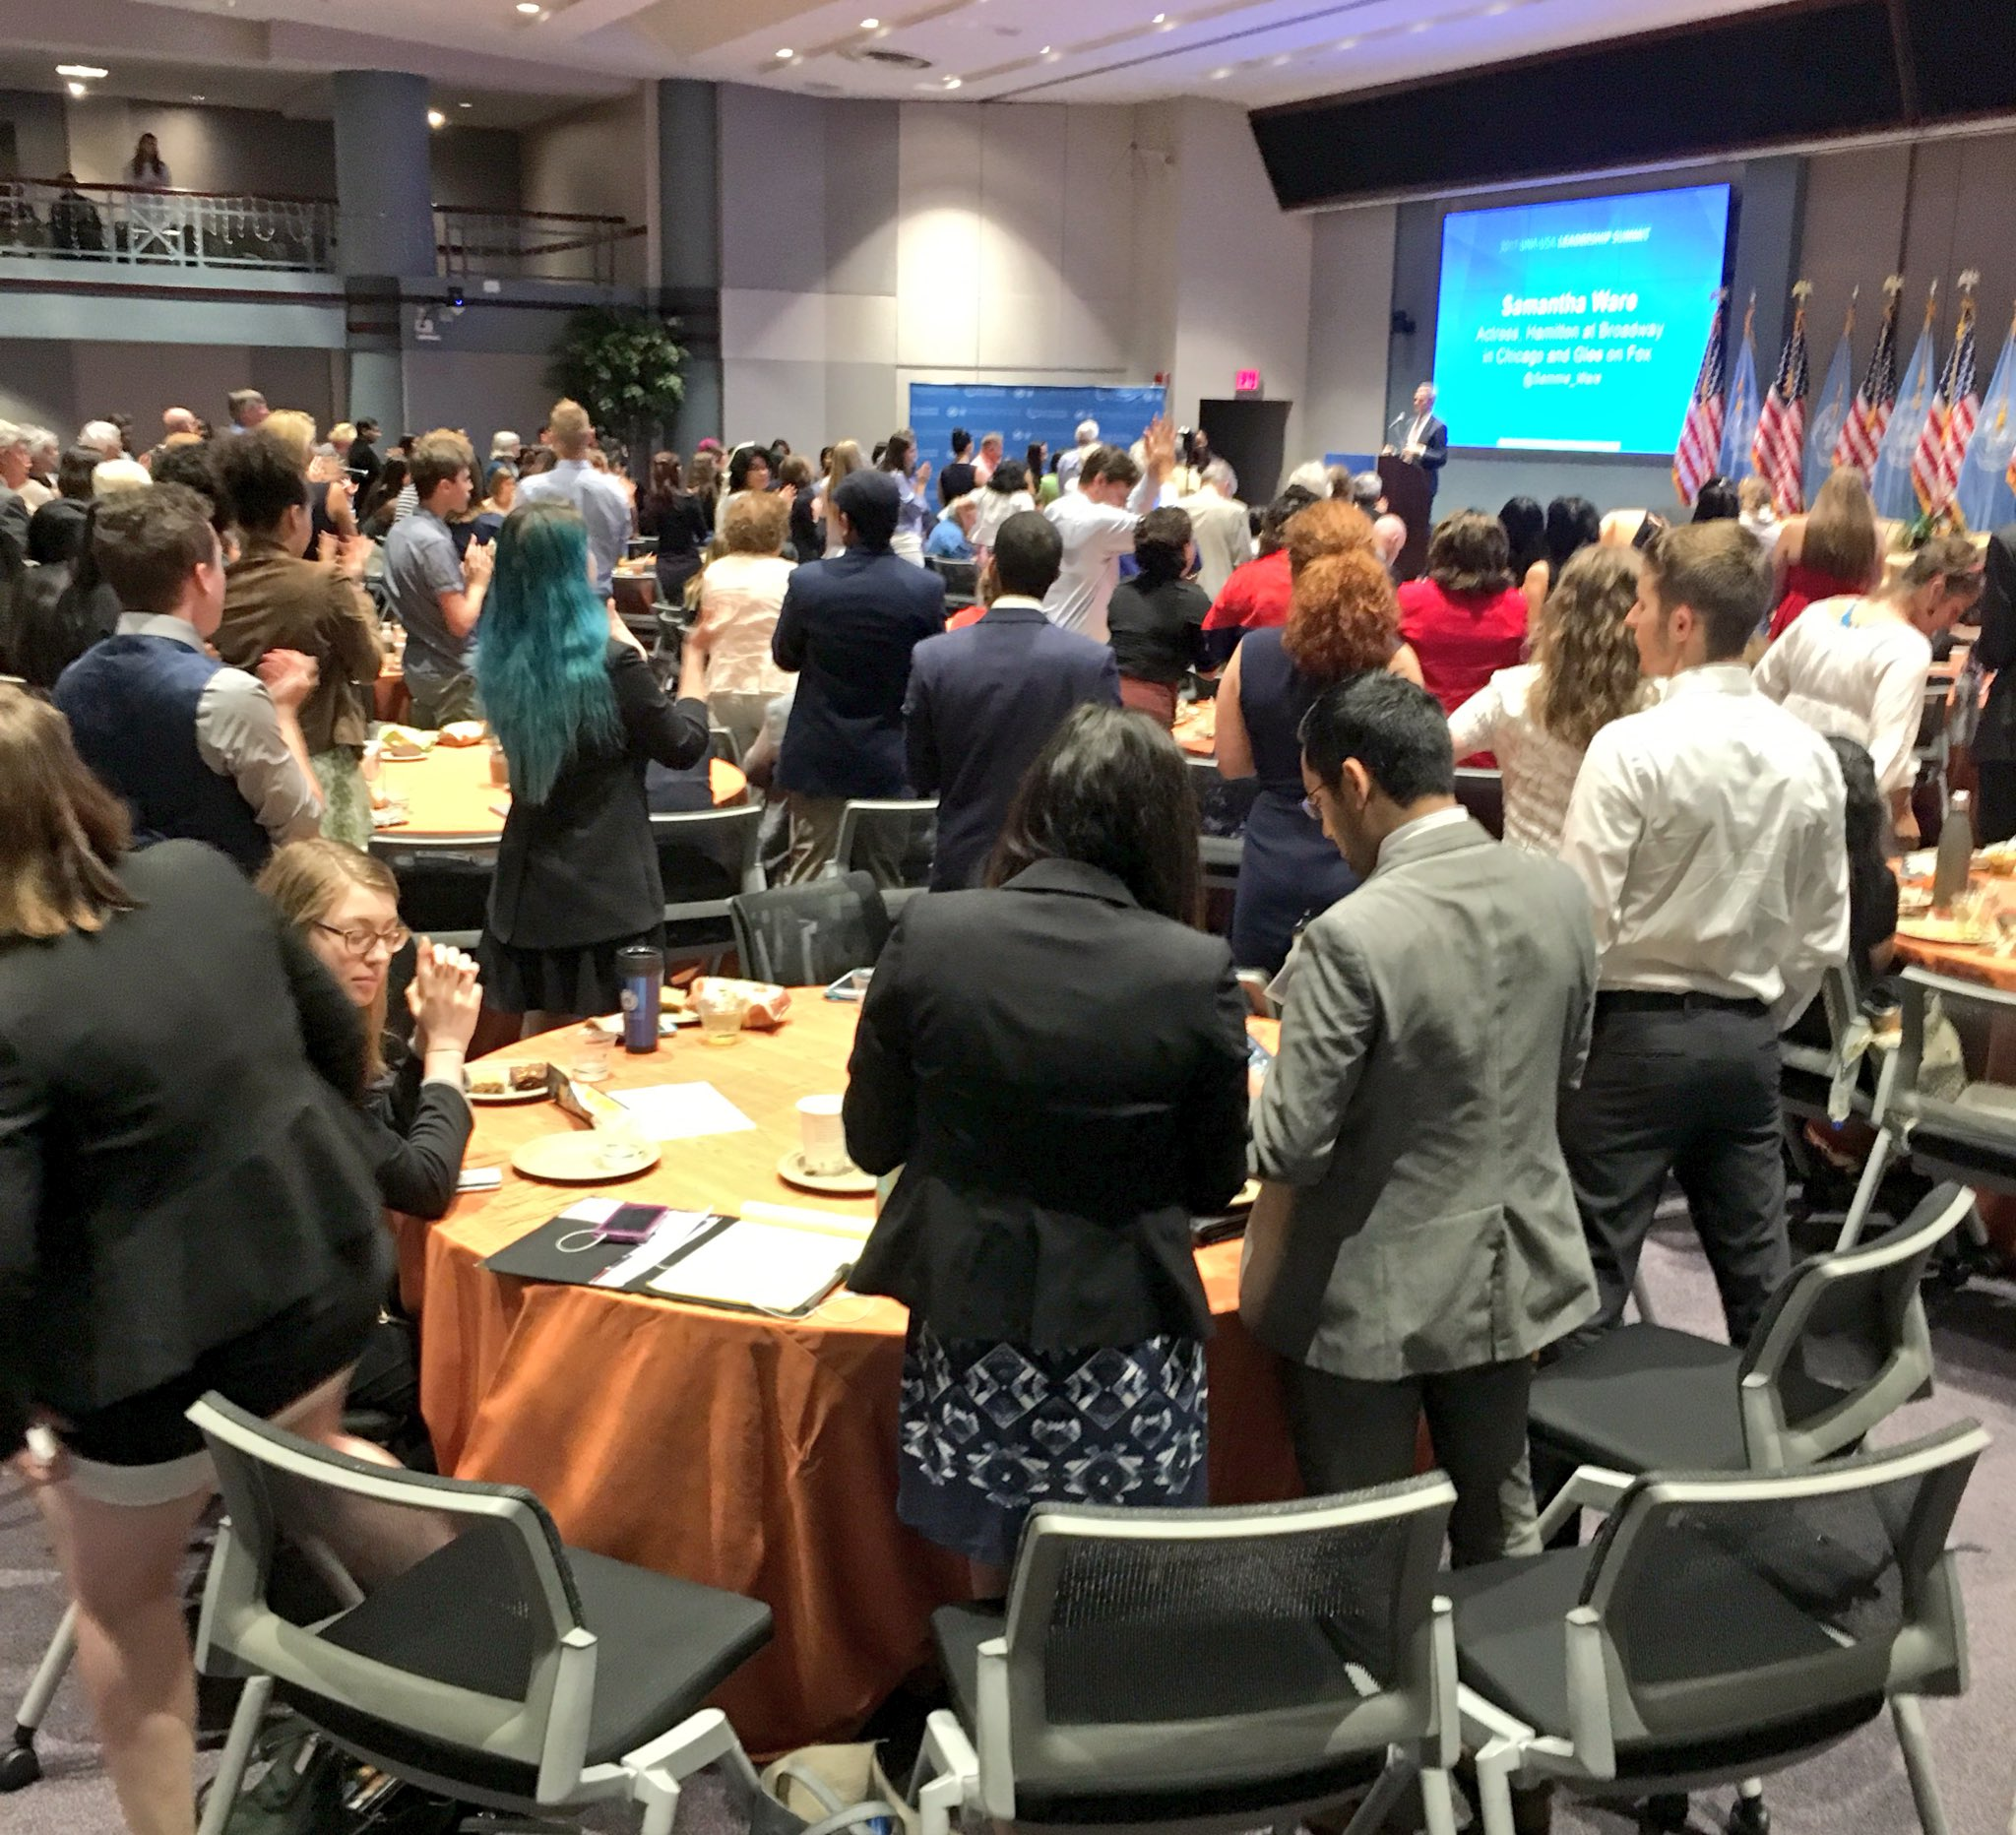 Standing ovation for @Sammie_Ware, an inspiring activist & star of @HamiltonMusical, who shares her story to inspire social change #USAforUN https://t.co/wbiE01i4CT